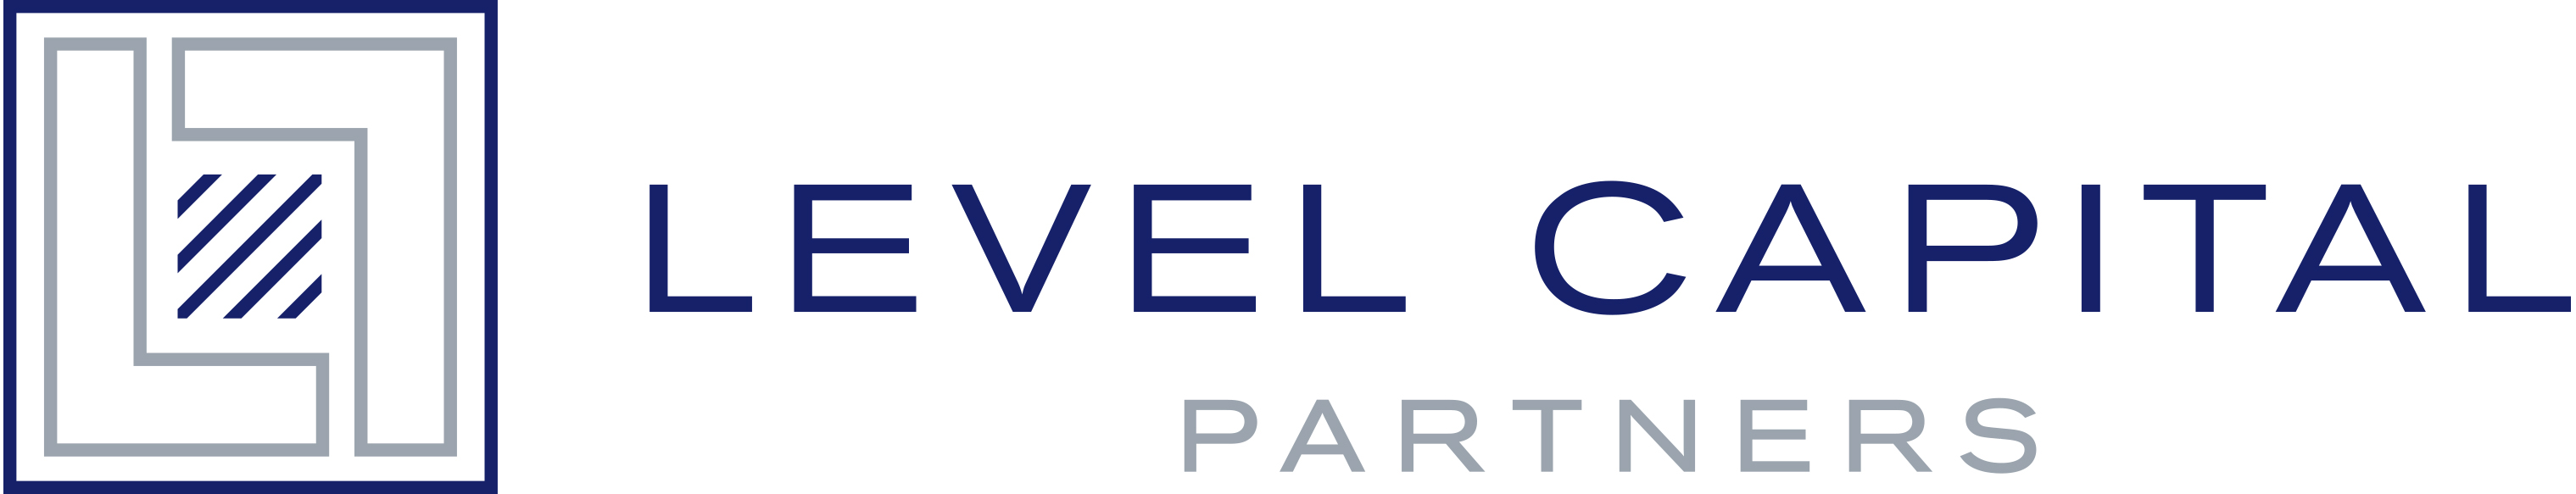 Level-Capital-Partners_horizontal_logo